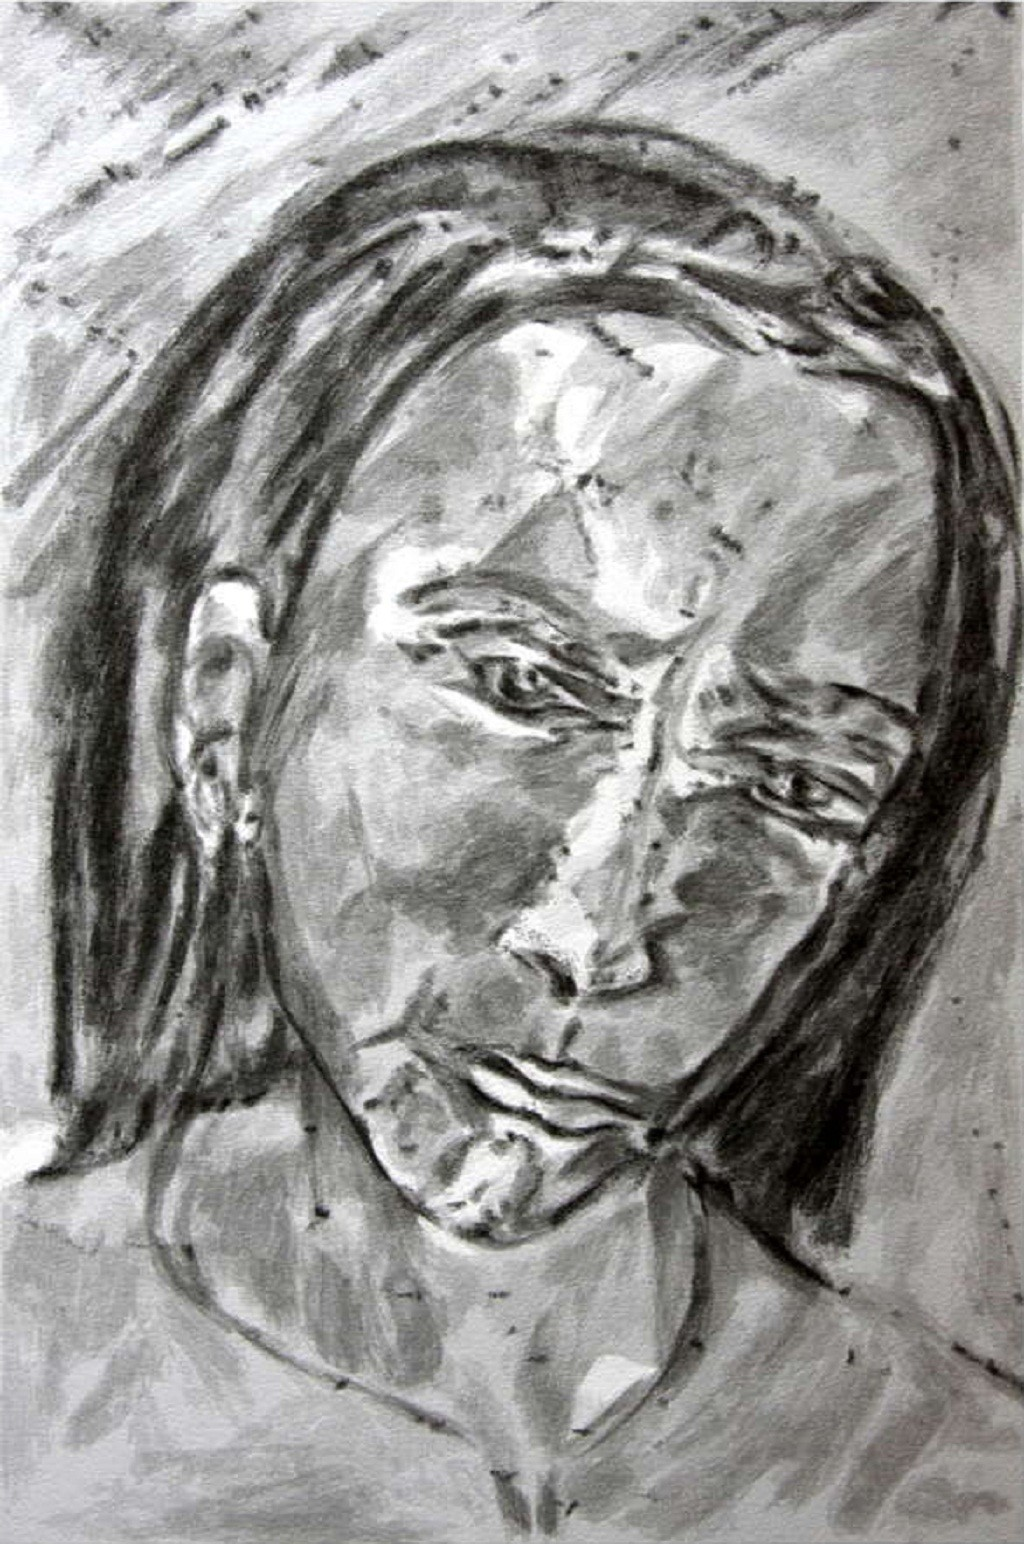 Head by Akbar Padamsee, Impressionism Serigraph, Serigraph on Paper, Gray color